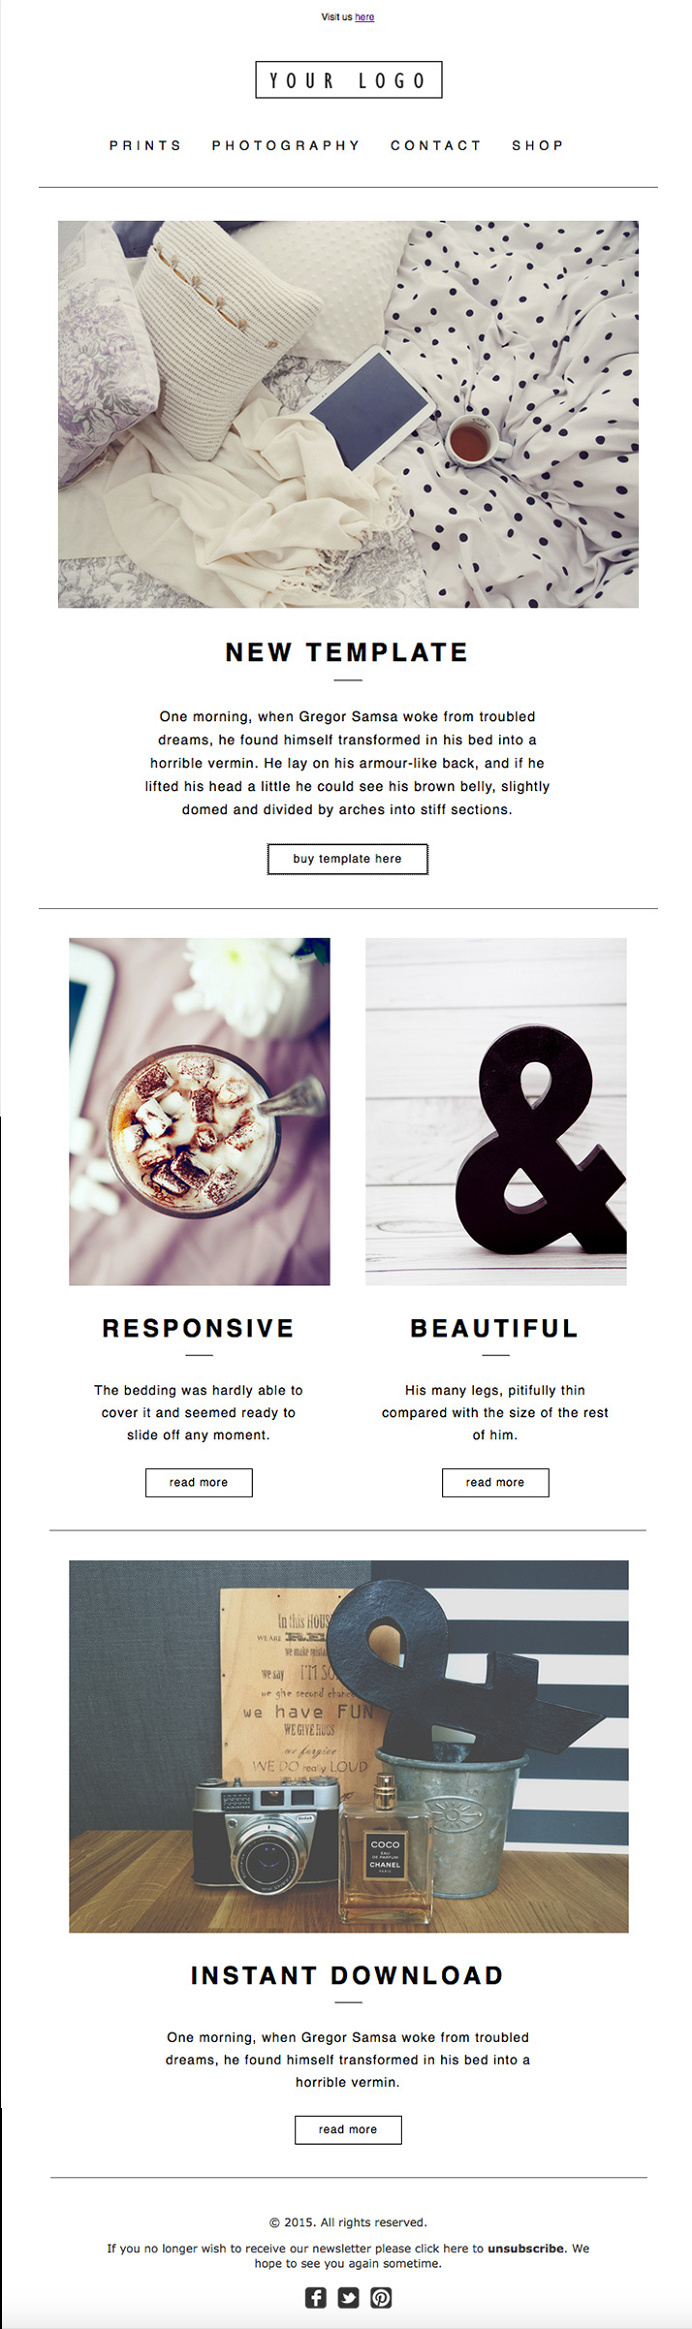 best design website modern newsletter template images on